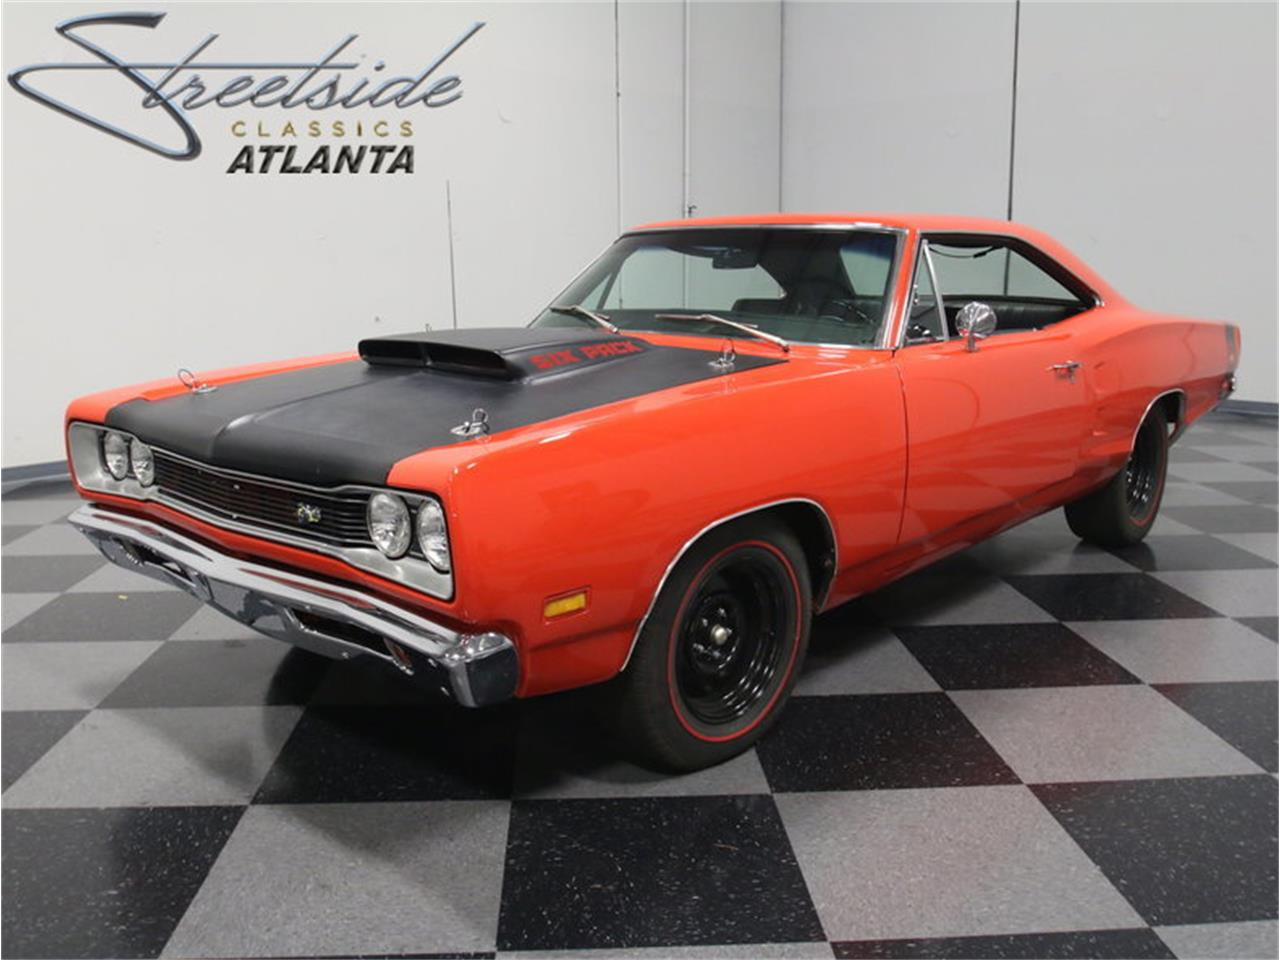 For Sale: 1969 Dodge Coronet A12 Super Bee in Lithia Springs, Georgia